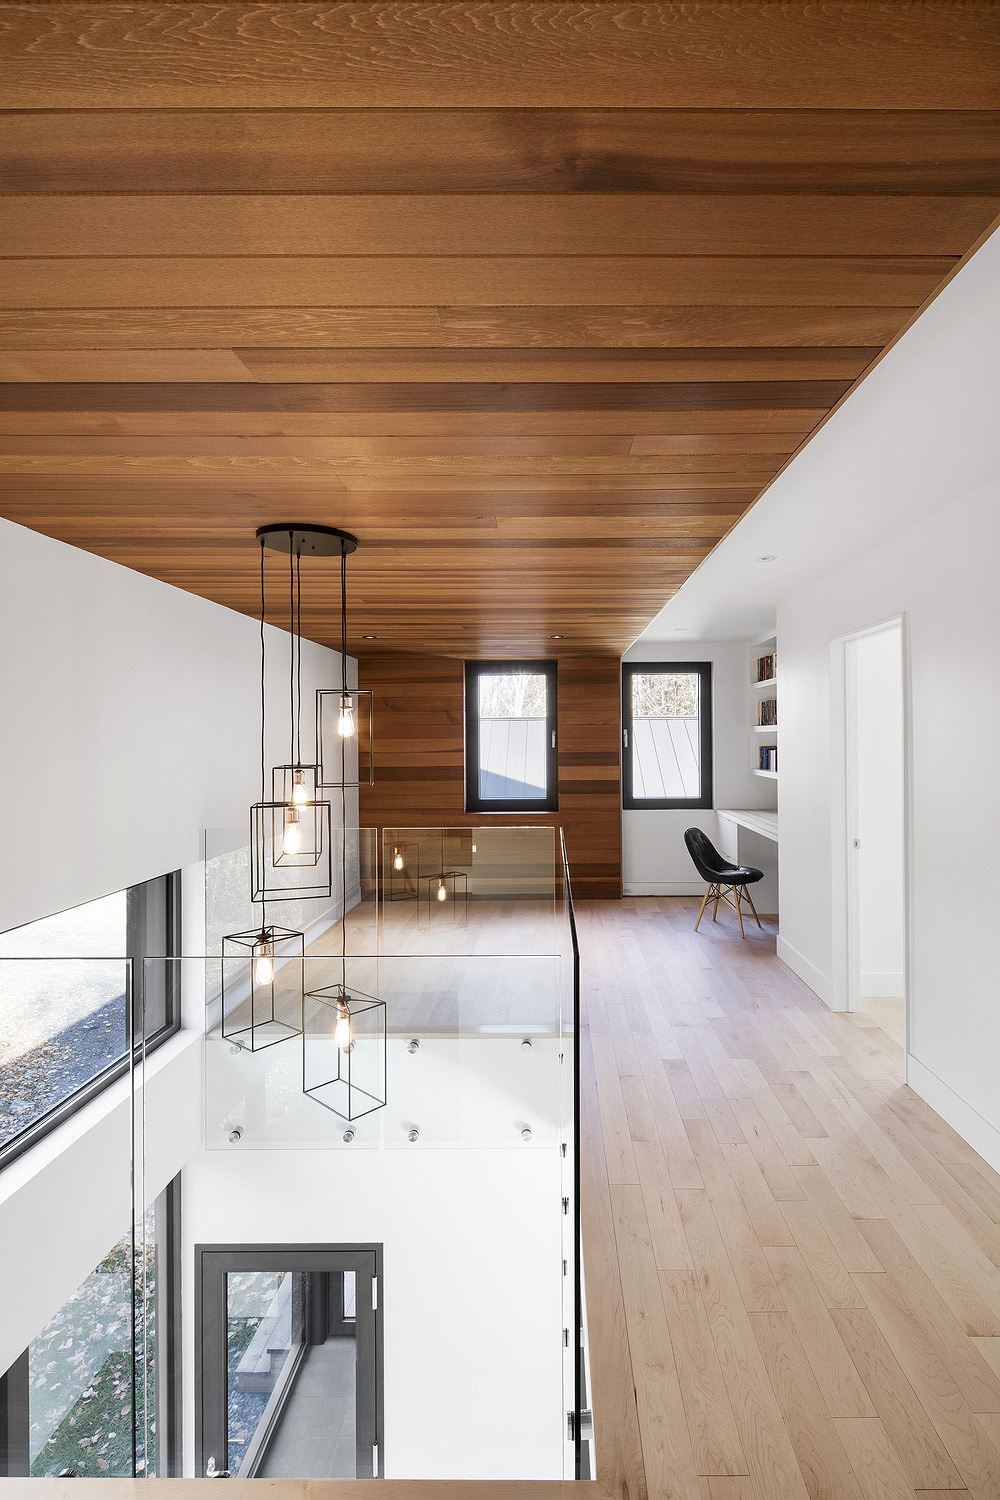 lk-house-bourgeois-lechasseur-architects (6)